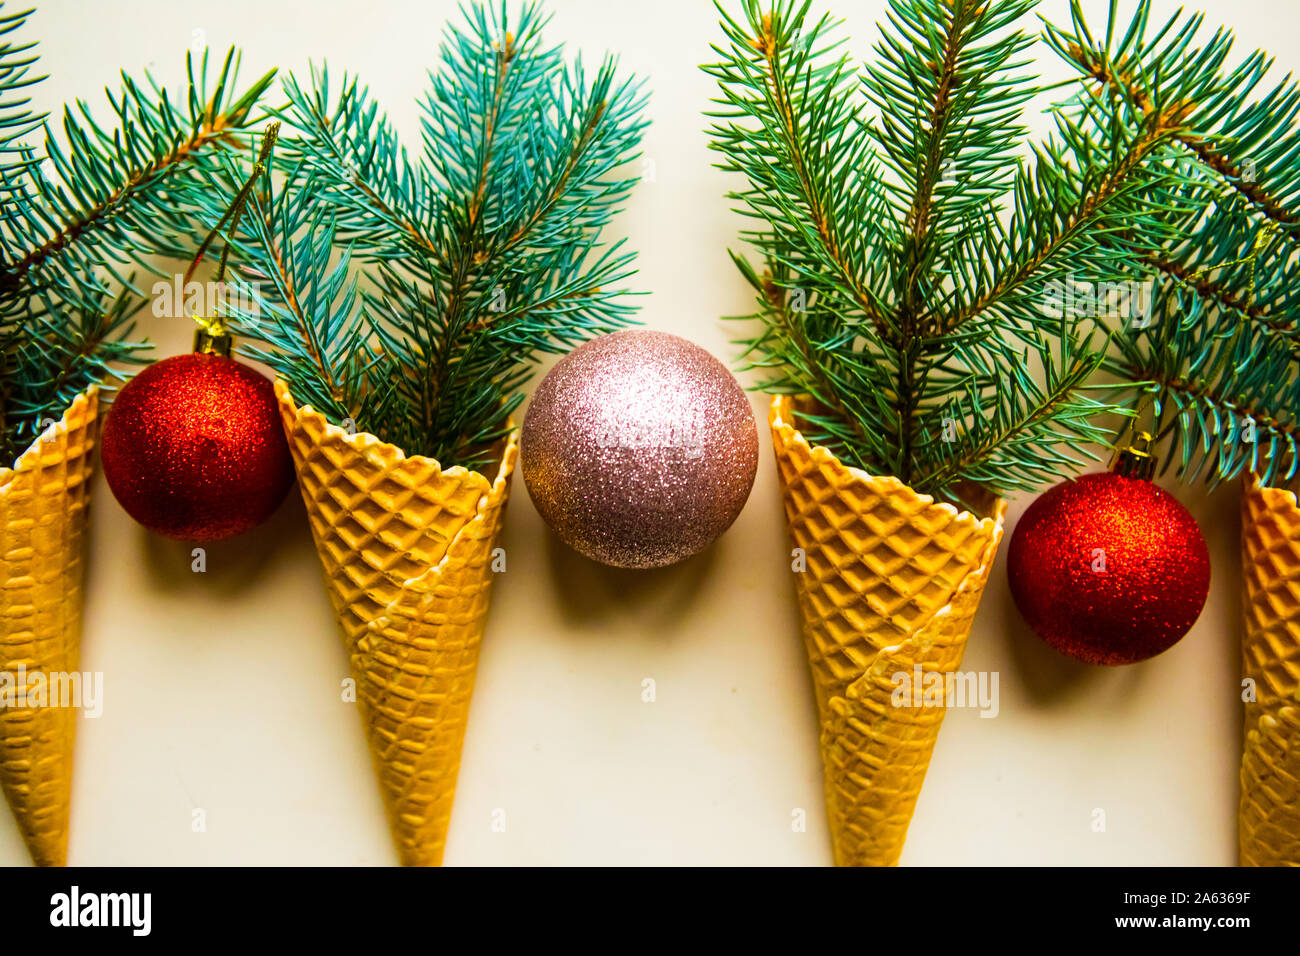 Christmas Tree Branches With Decorations In Waffle Cones Stock Photo Alamy